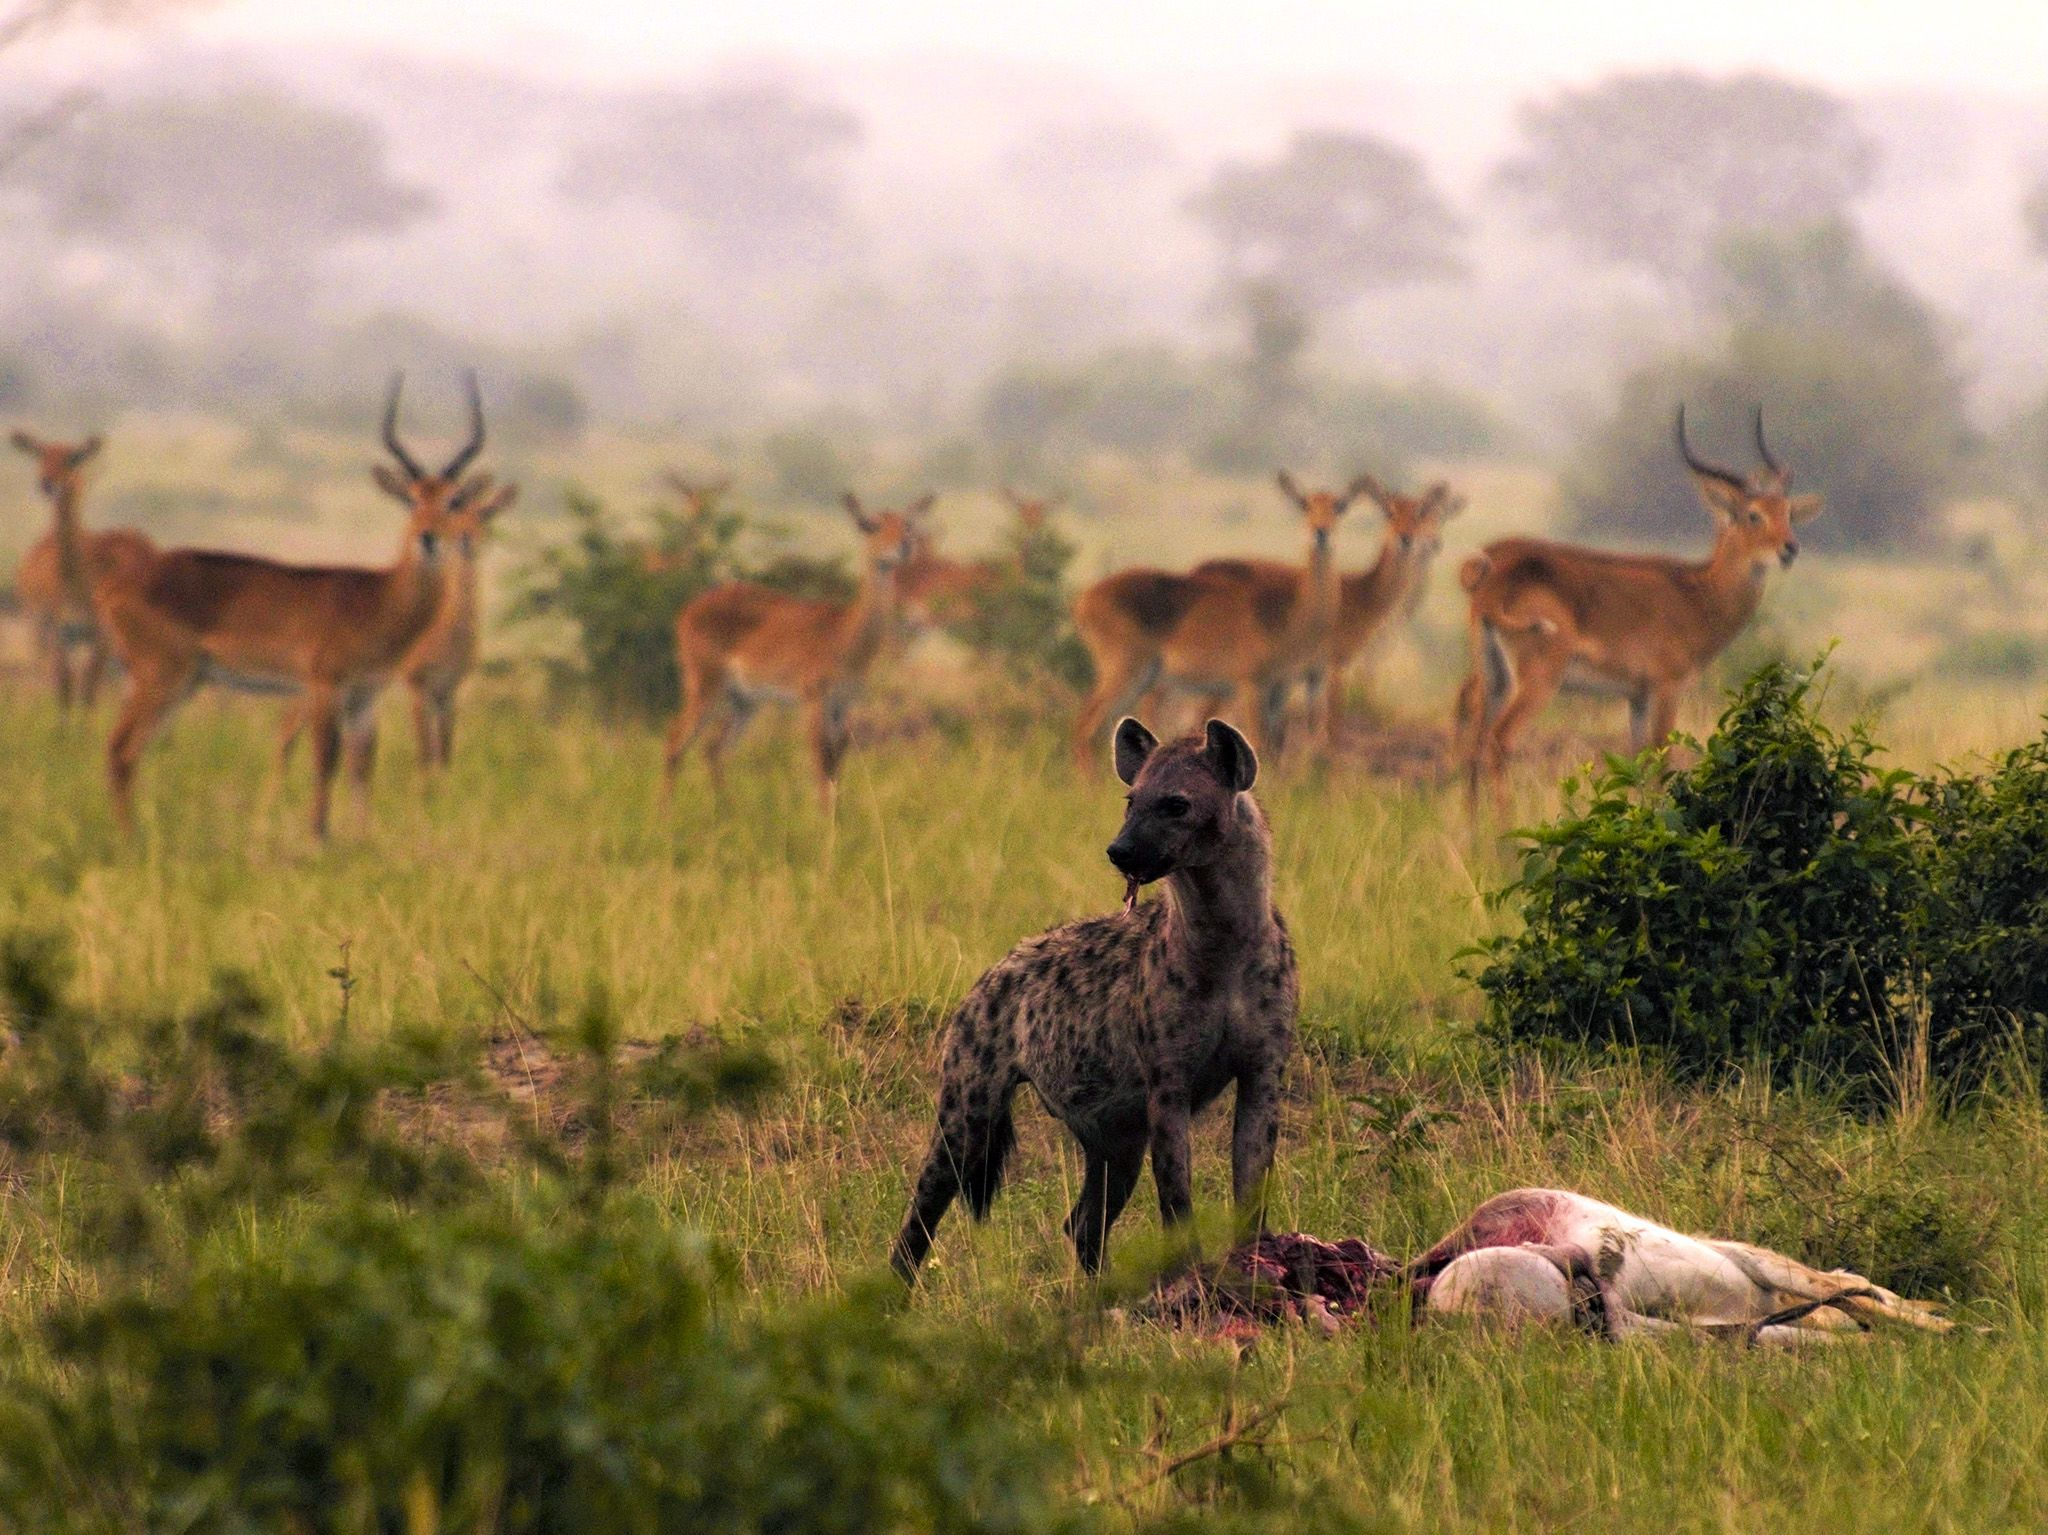 Uganda:  Hyenas hunt at night, a kob fell victim. This image is from Wild Uganda. [Photo of the day - September 2018]